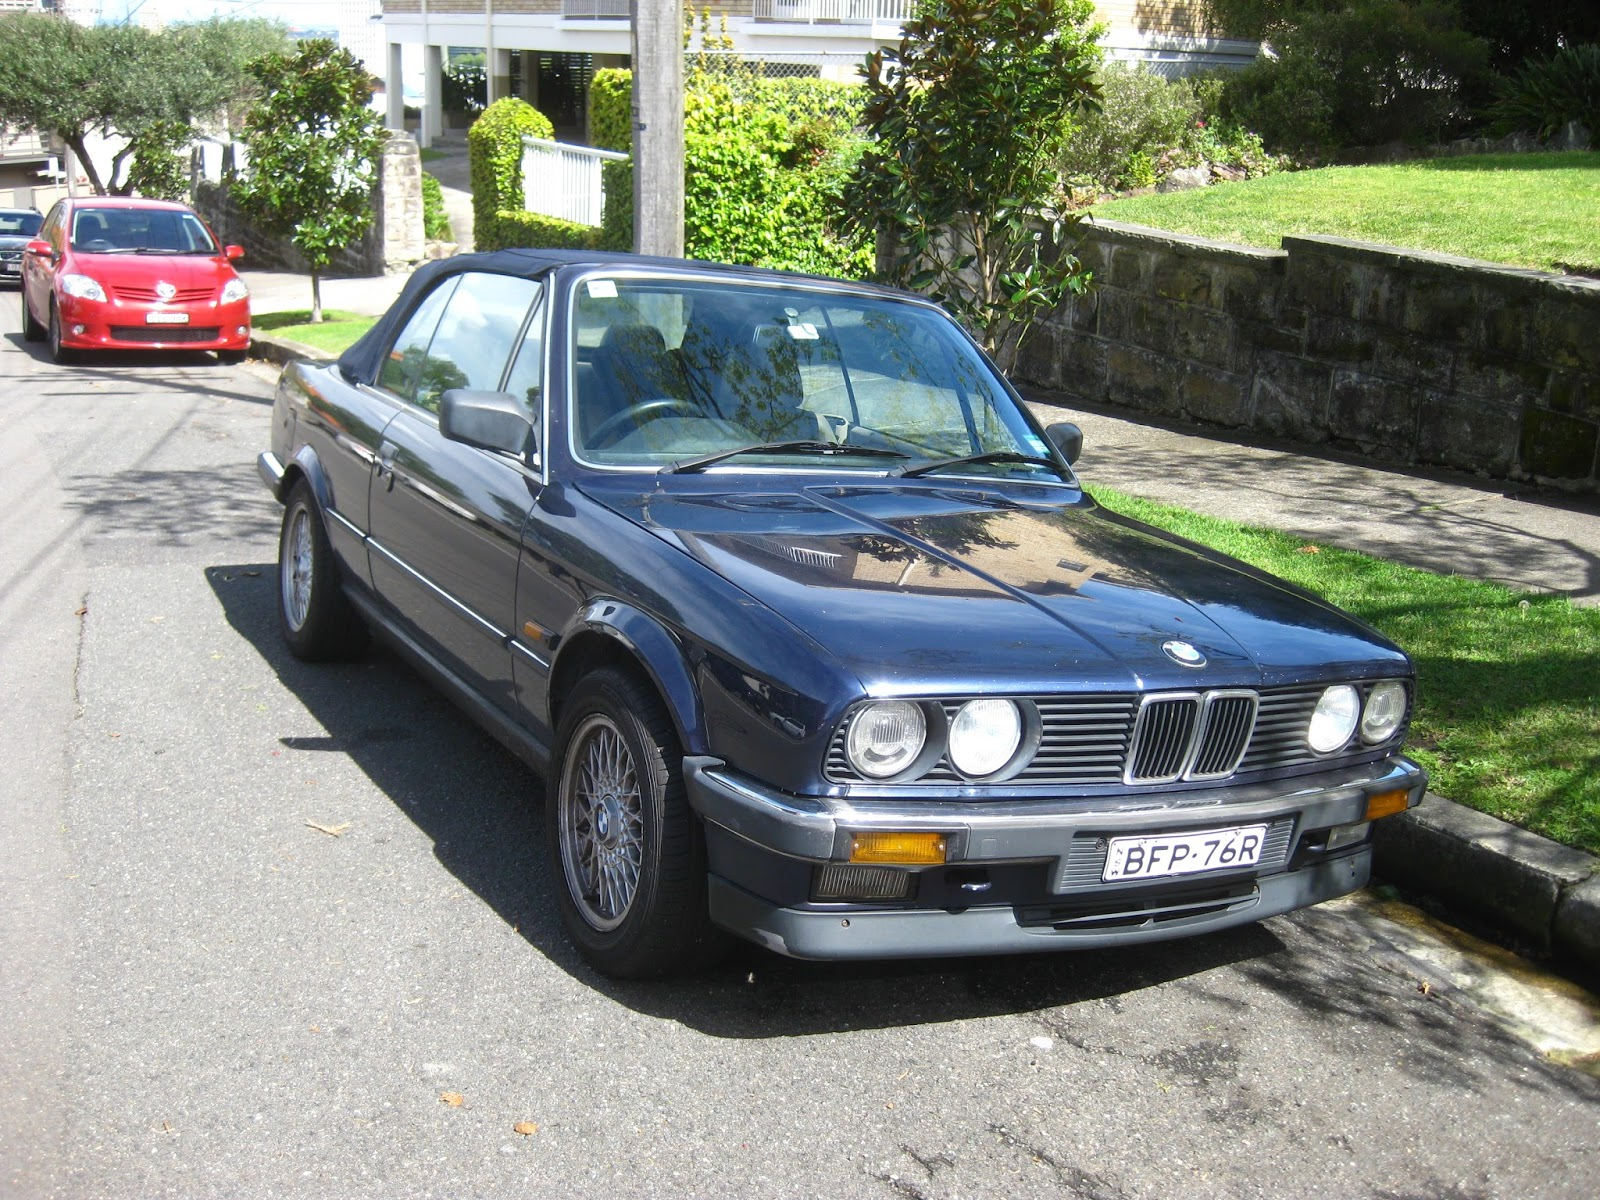 Aussie Old Parked Cars: 1985 BMW 325i Convertible (E30)